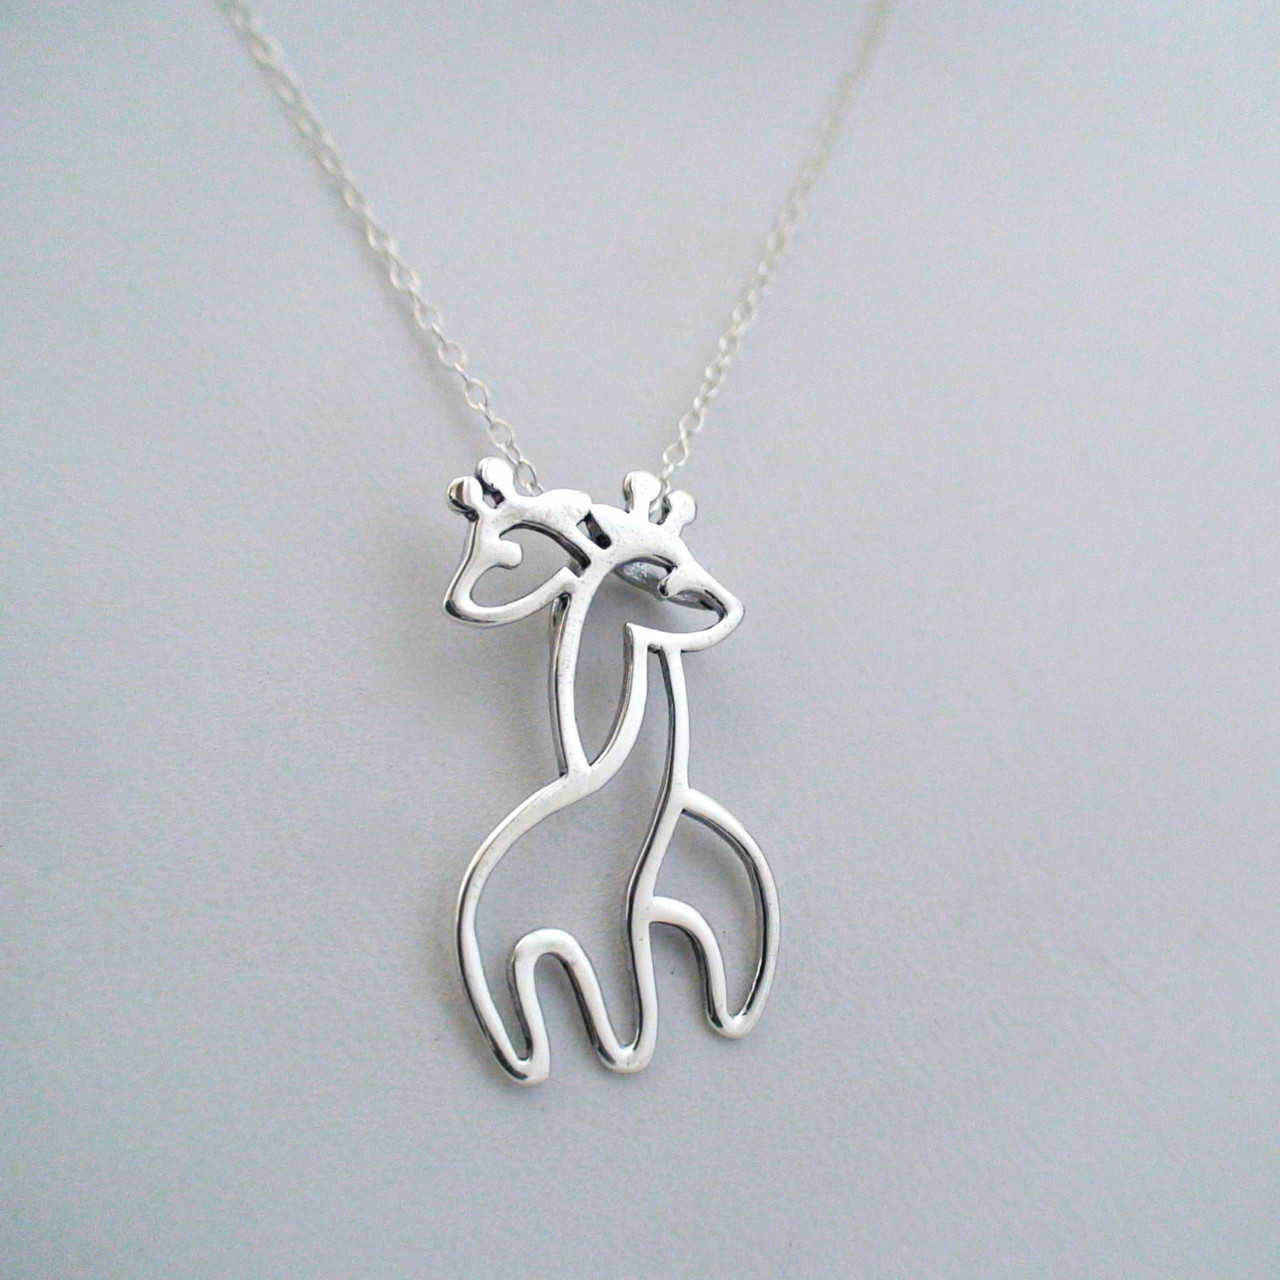 click sterling giraffe necklace silver kay expand zm black to mv pendant diamonds en kaystore white